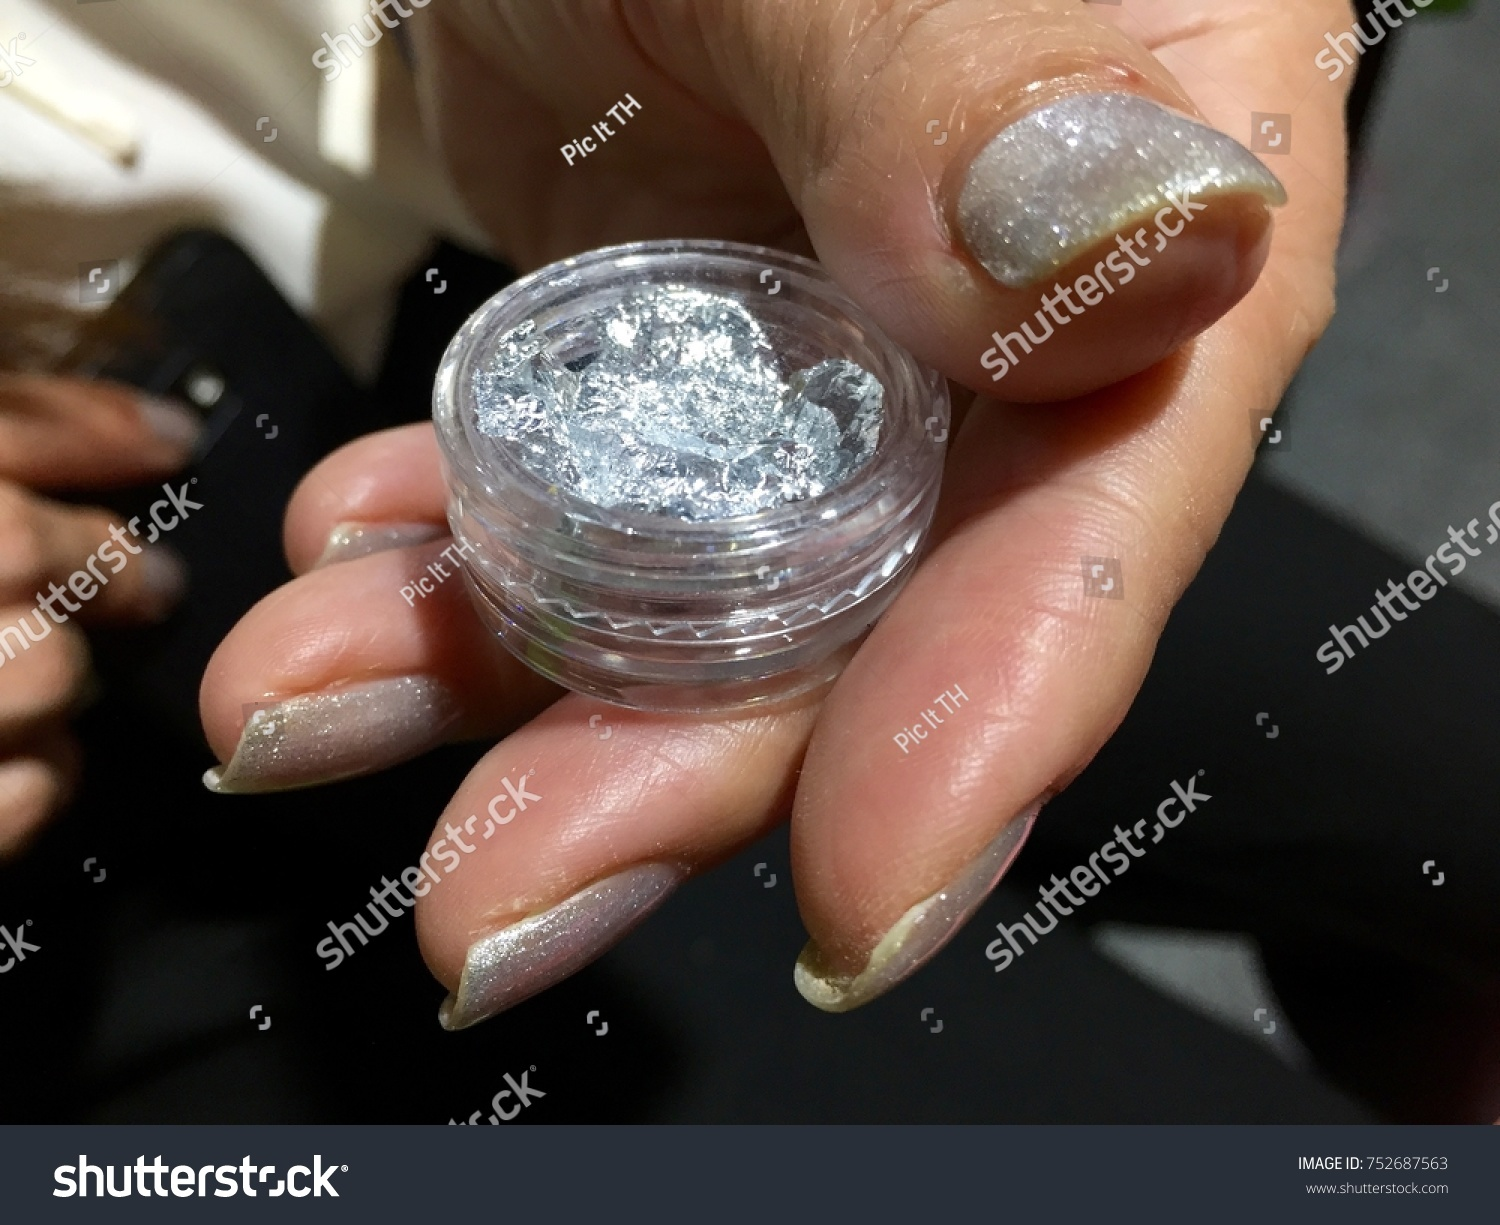 Nail Art Designs Silver Glittery Accent Stock Photo (Download Now ...